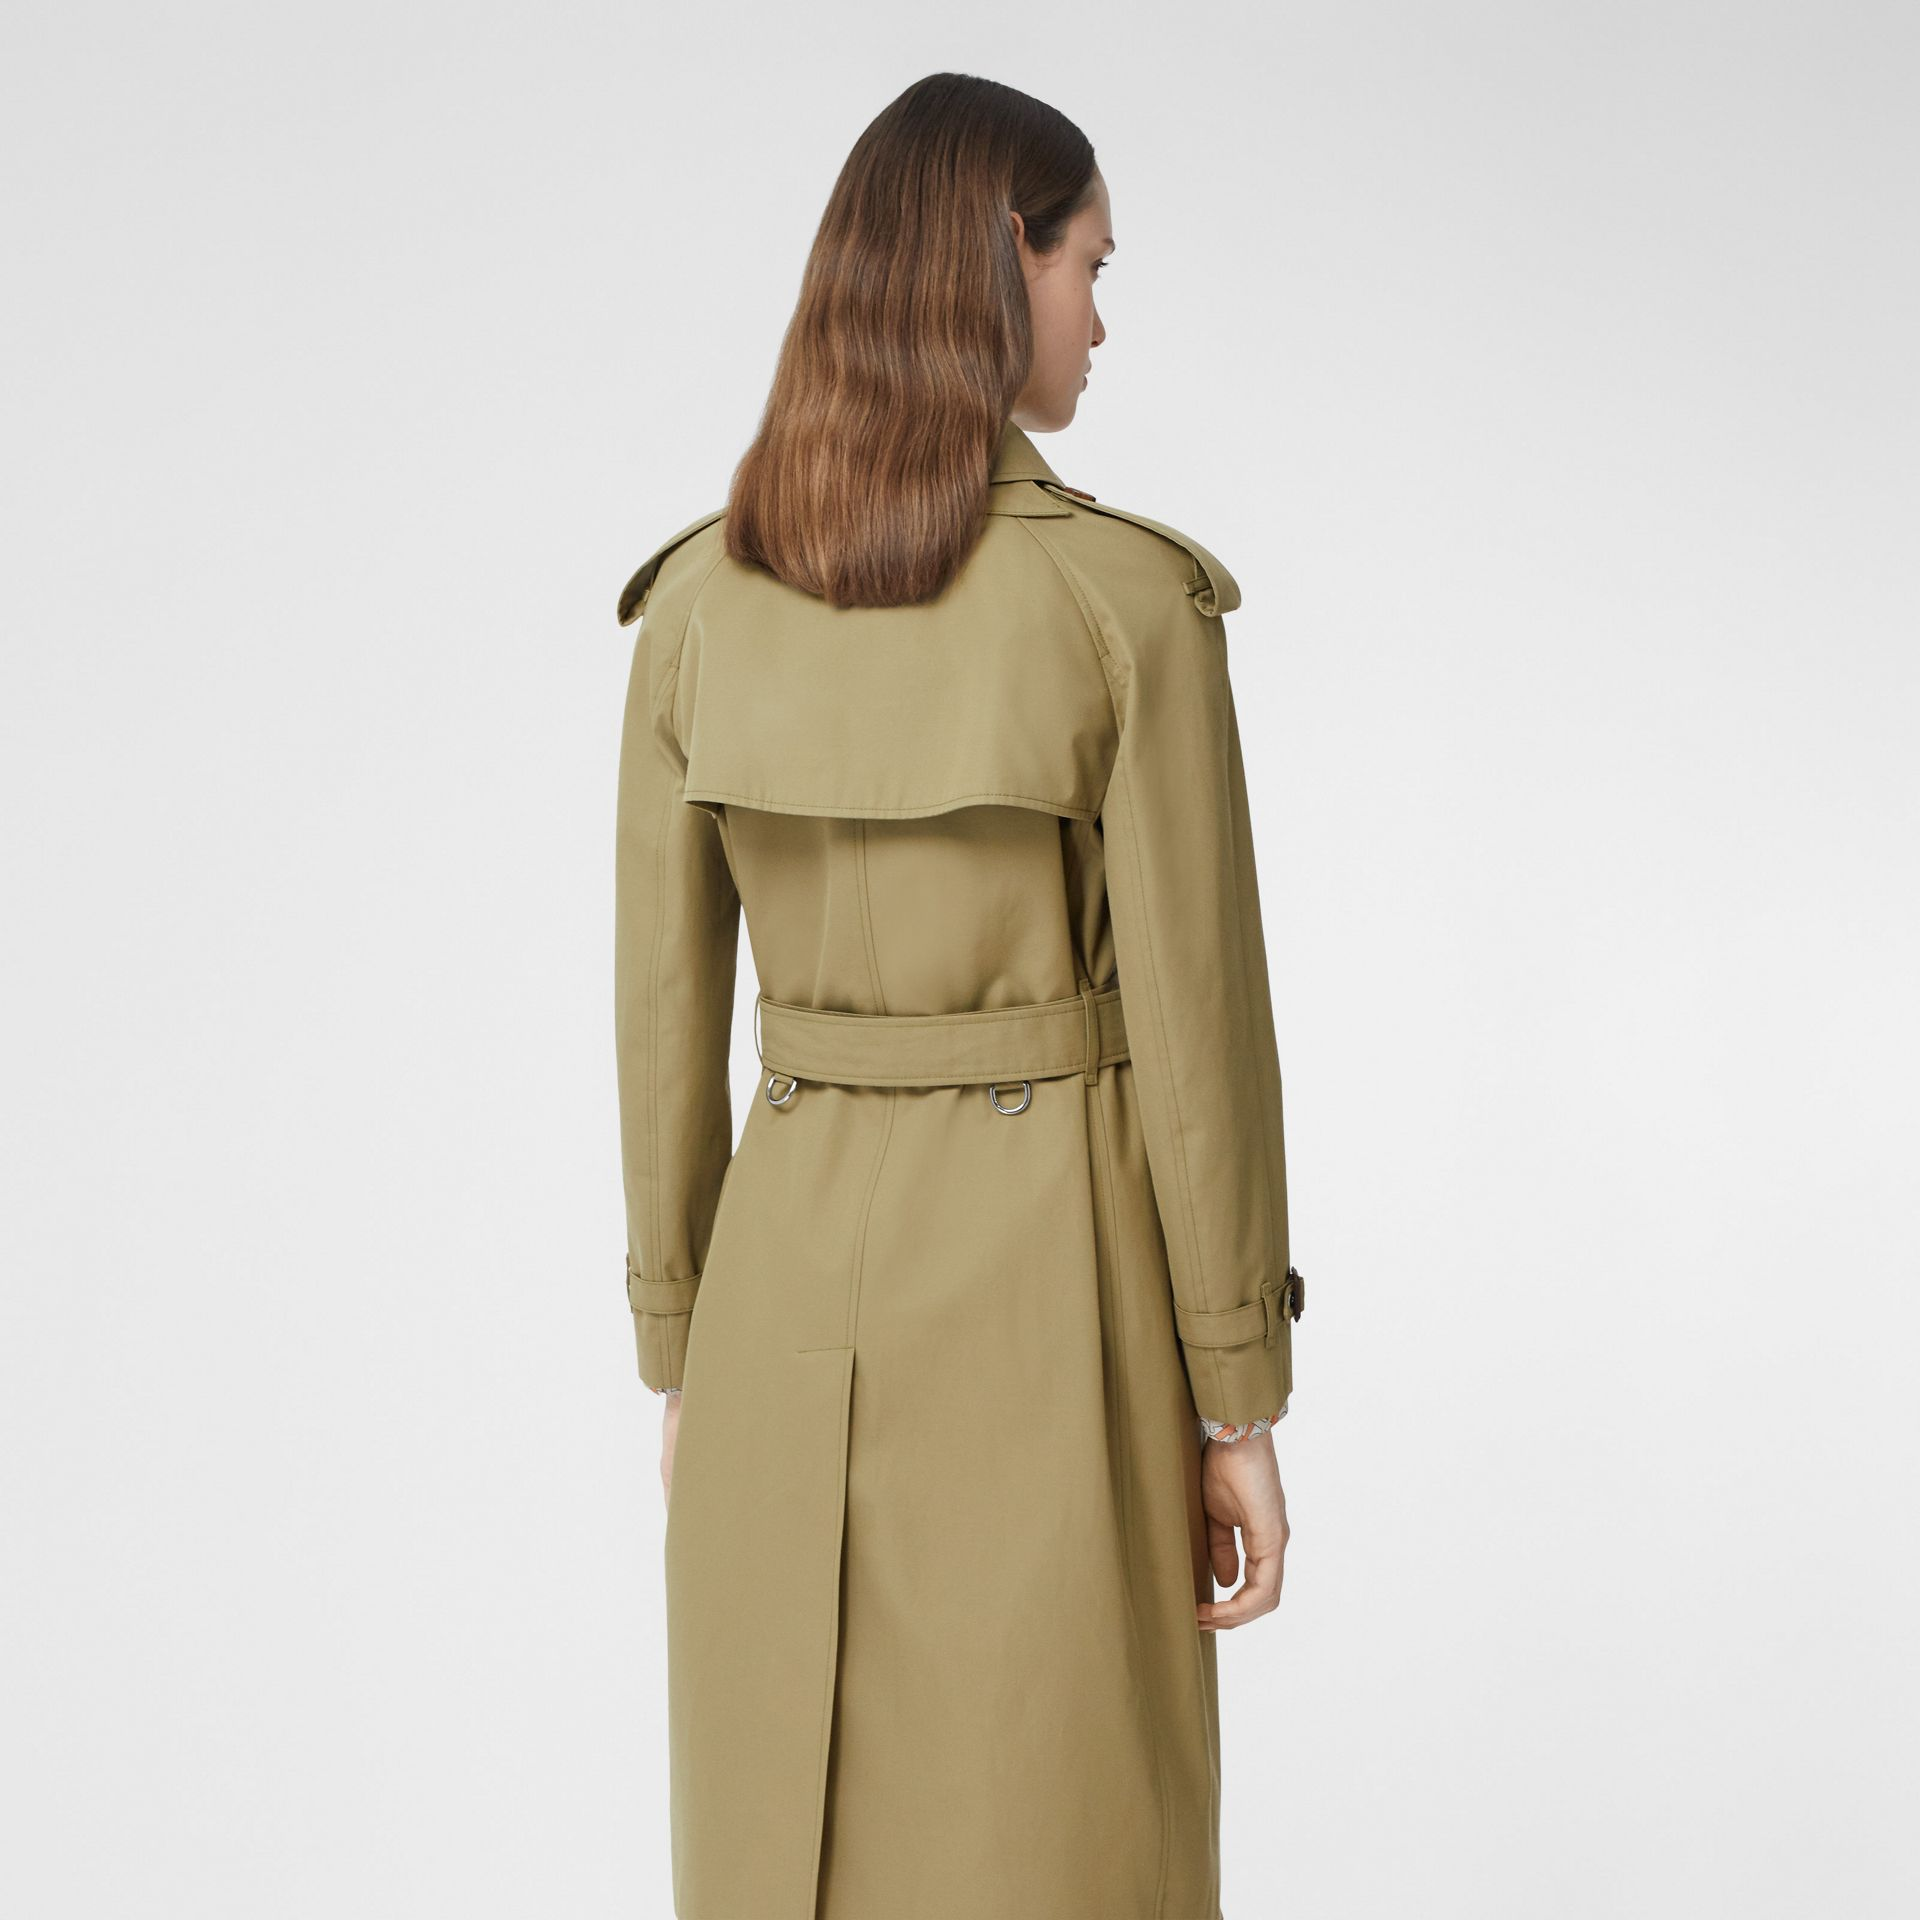 Animalia Print-lined Cotton Gabardine Trench Coat in Rich Olive - Women | Burberry Canada - gallery image 2